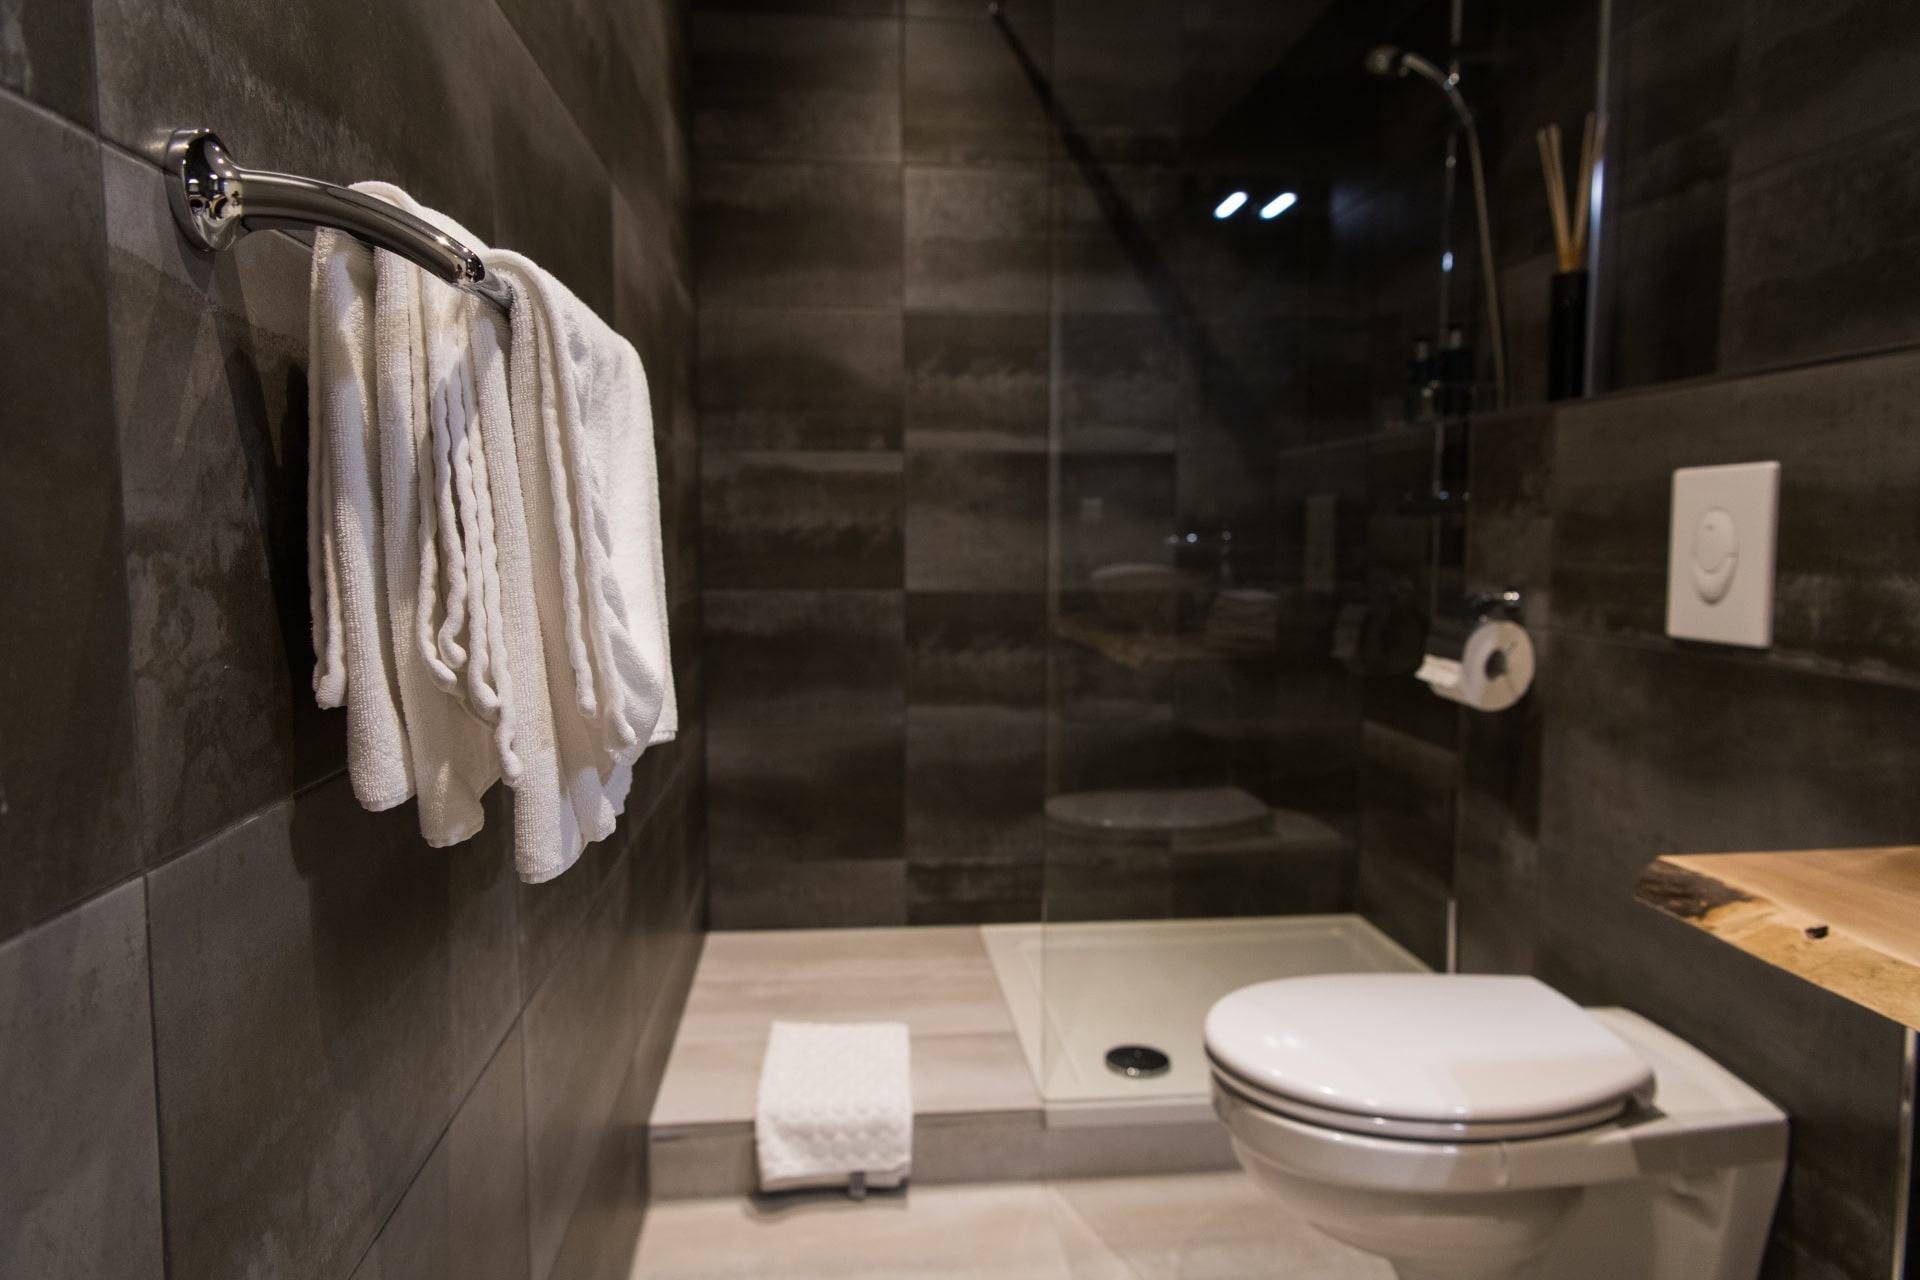 clean-white-towels-on-a-hanger-at-bathroom-against-Y2T4958